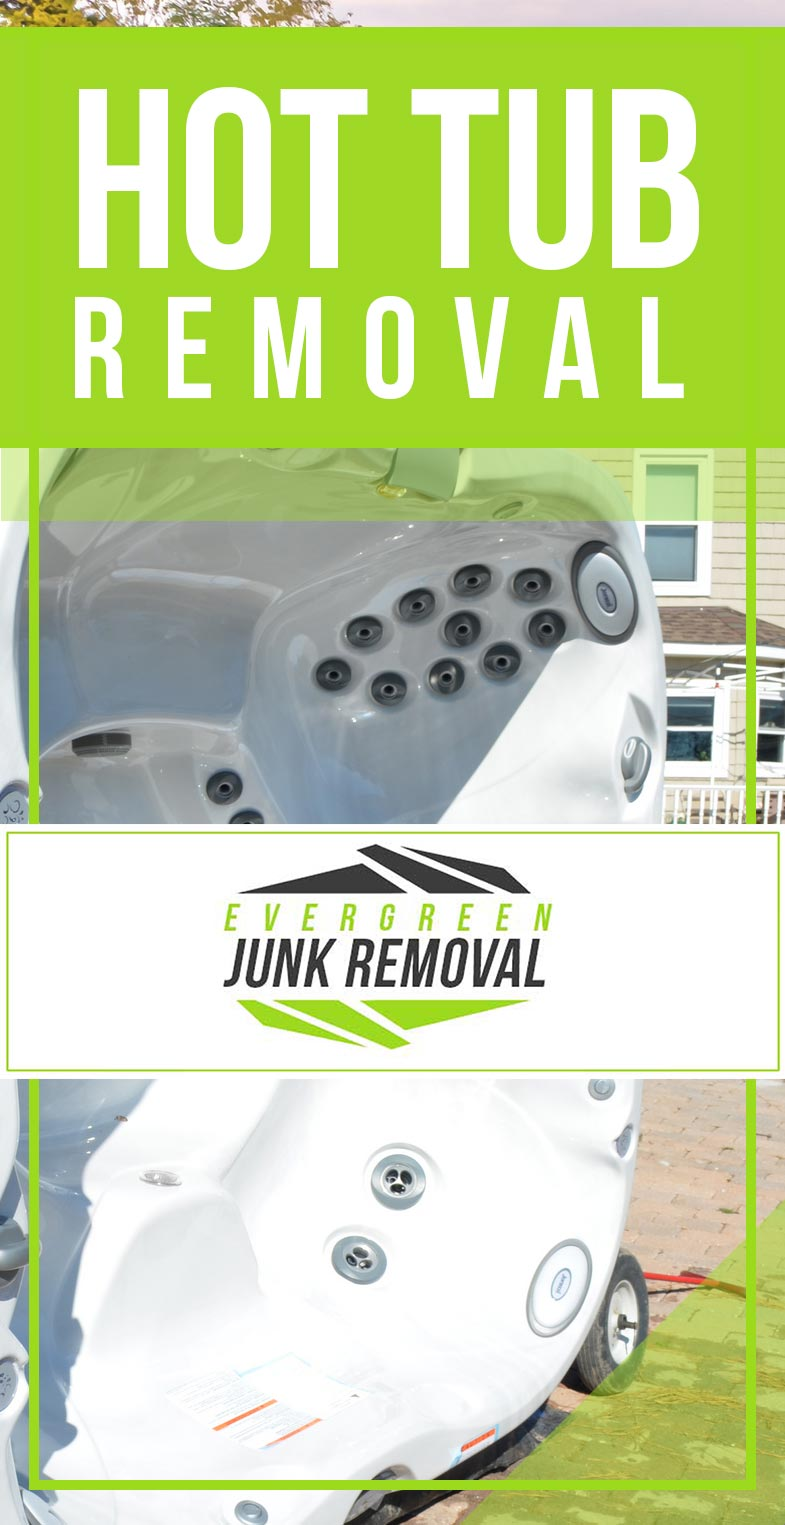 Brier Hot Tub Removal